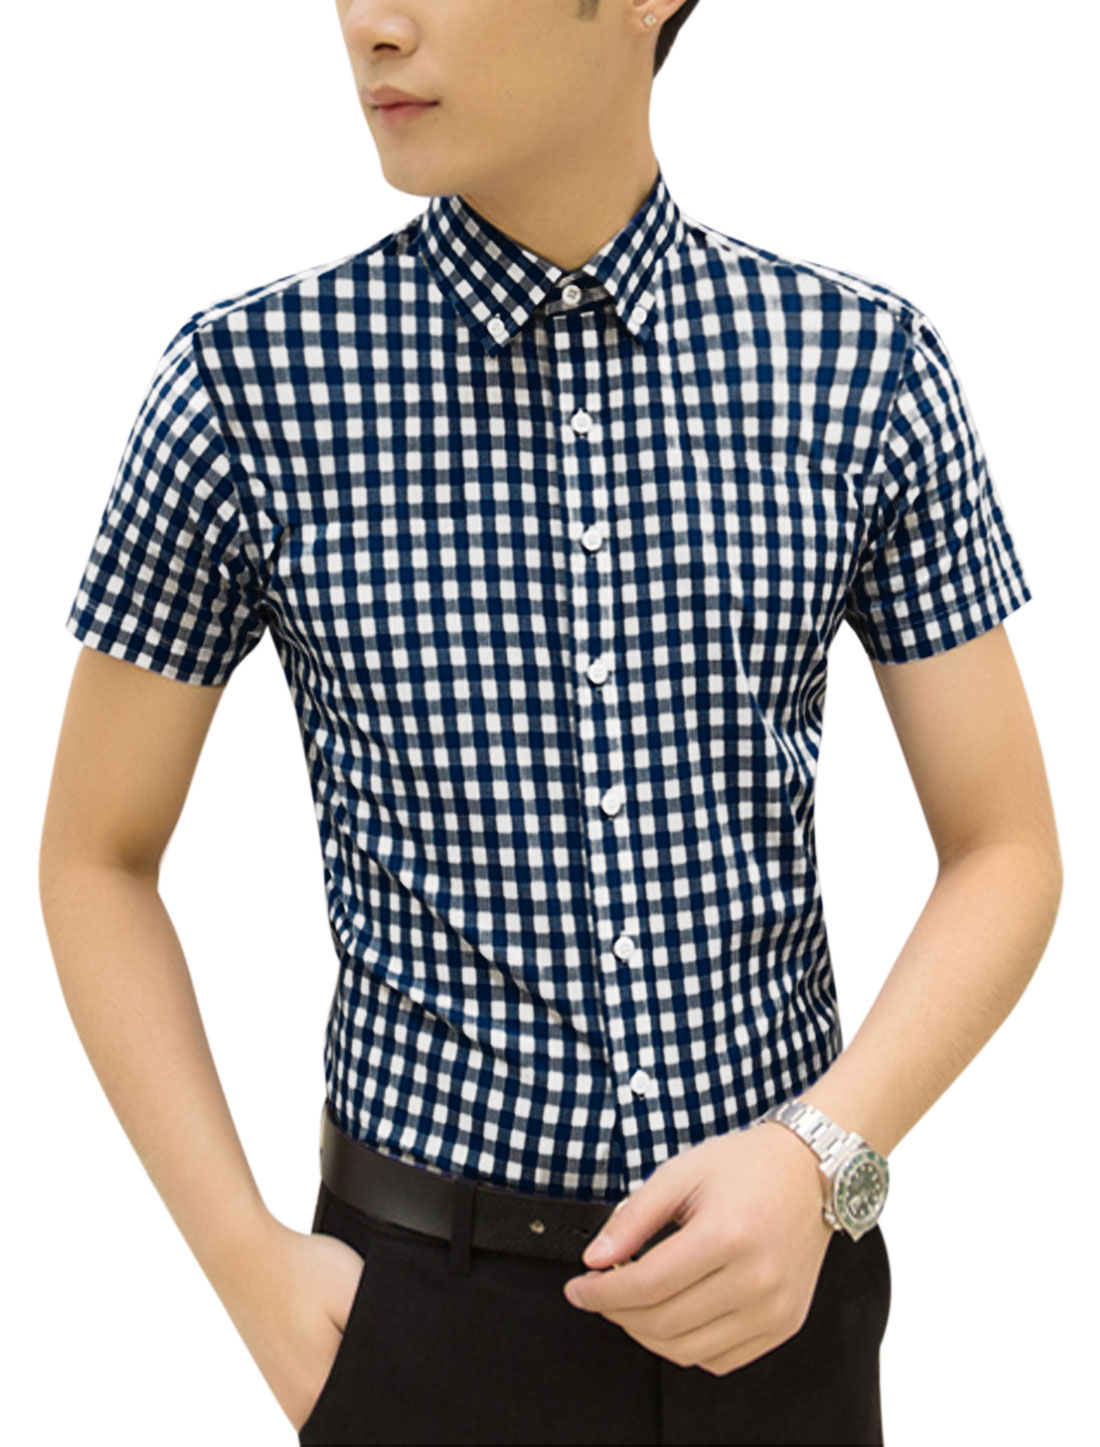 Man Plaids Short Sleeves Button Up Point Collar Casual Shirt Navy Blue White M